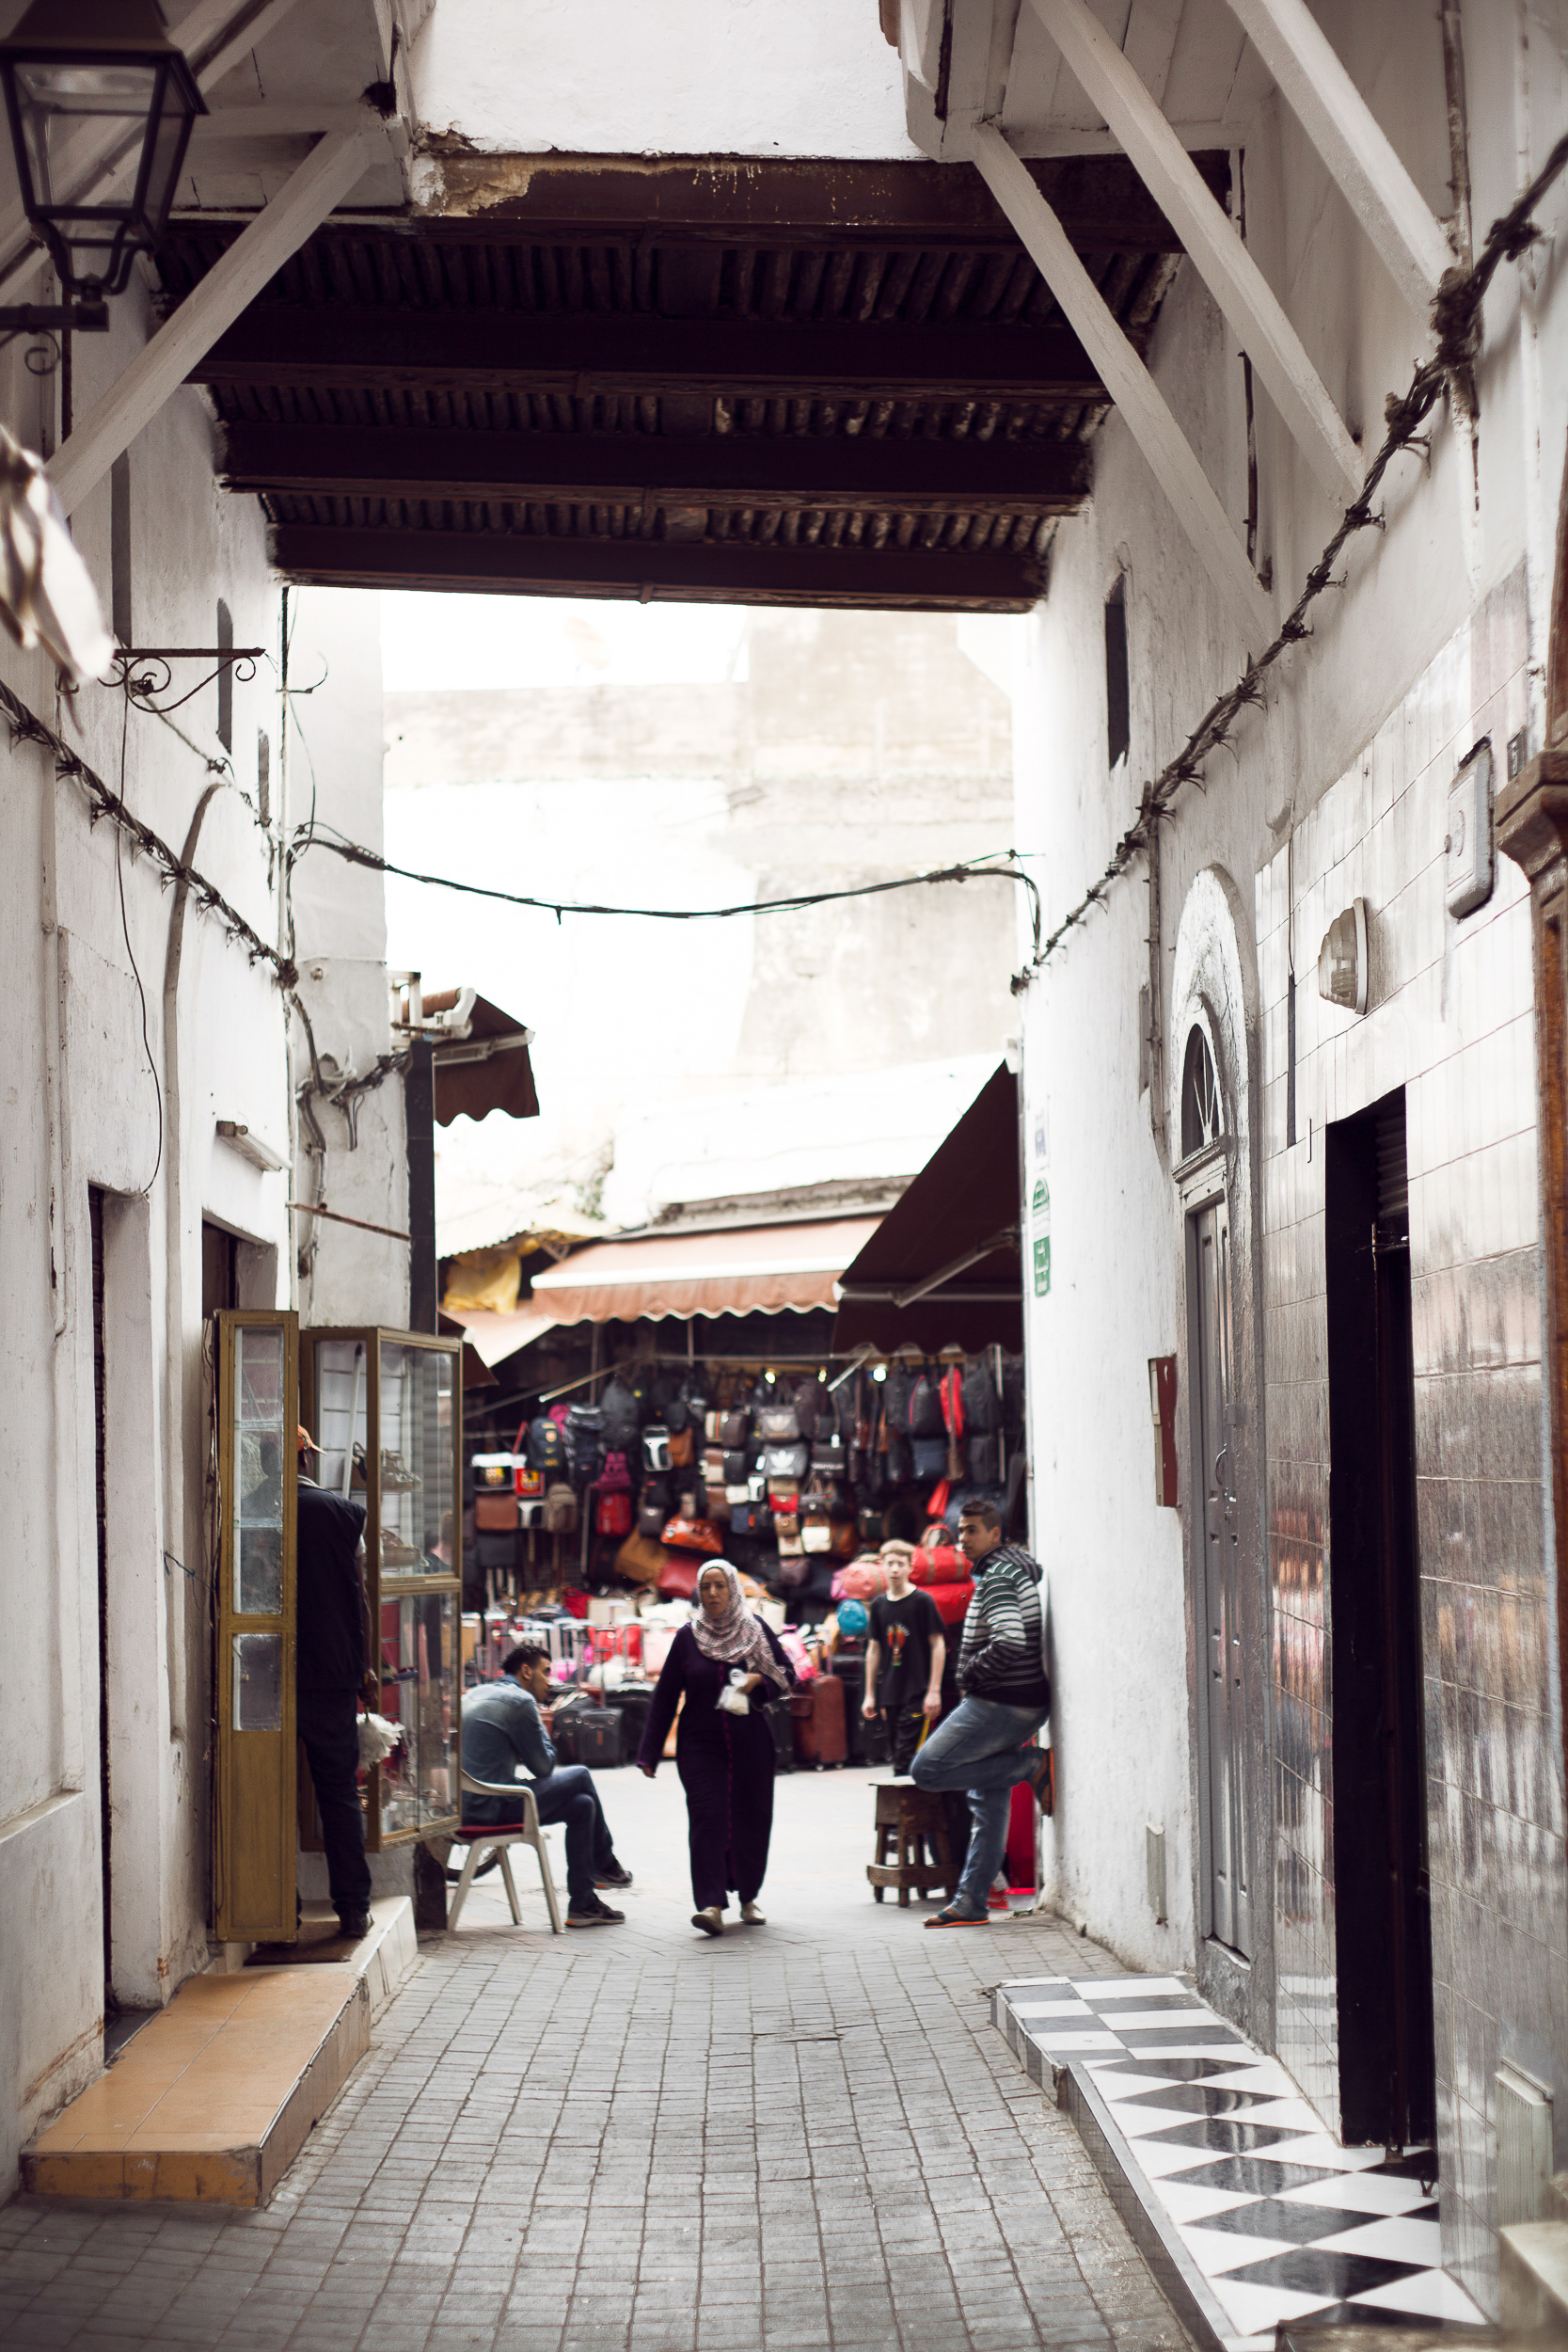 Chacon Images_Casablanca_Travel_WEB_-16.jpg